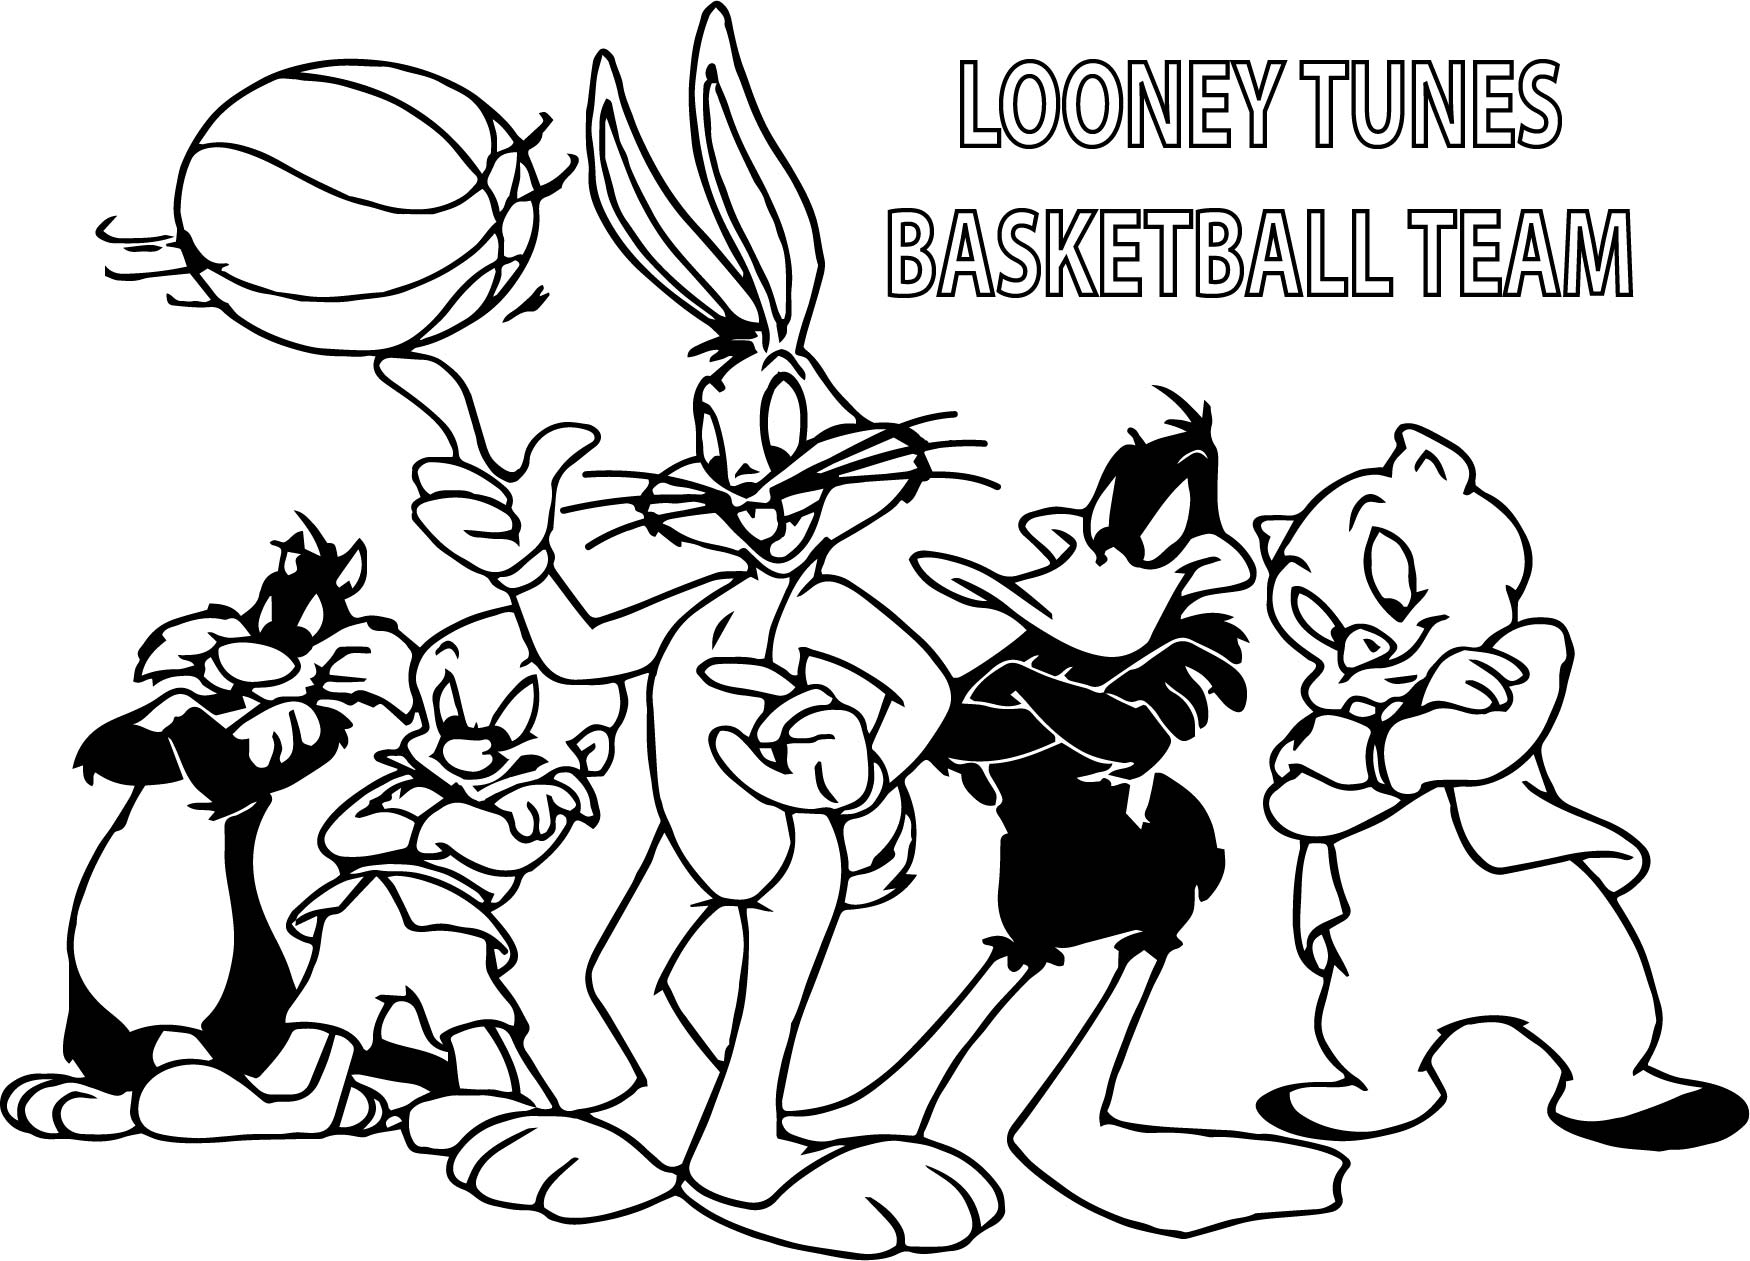 1750x1261 Looney Tunes Basketball Team Coloring Page Wecoloringpage